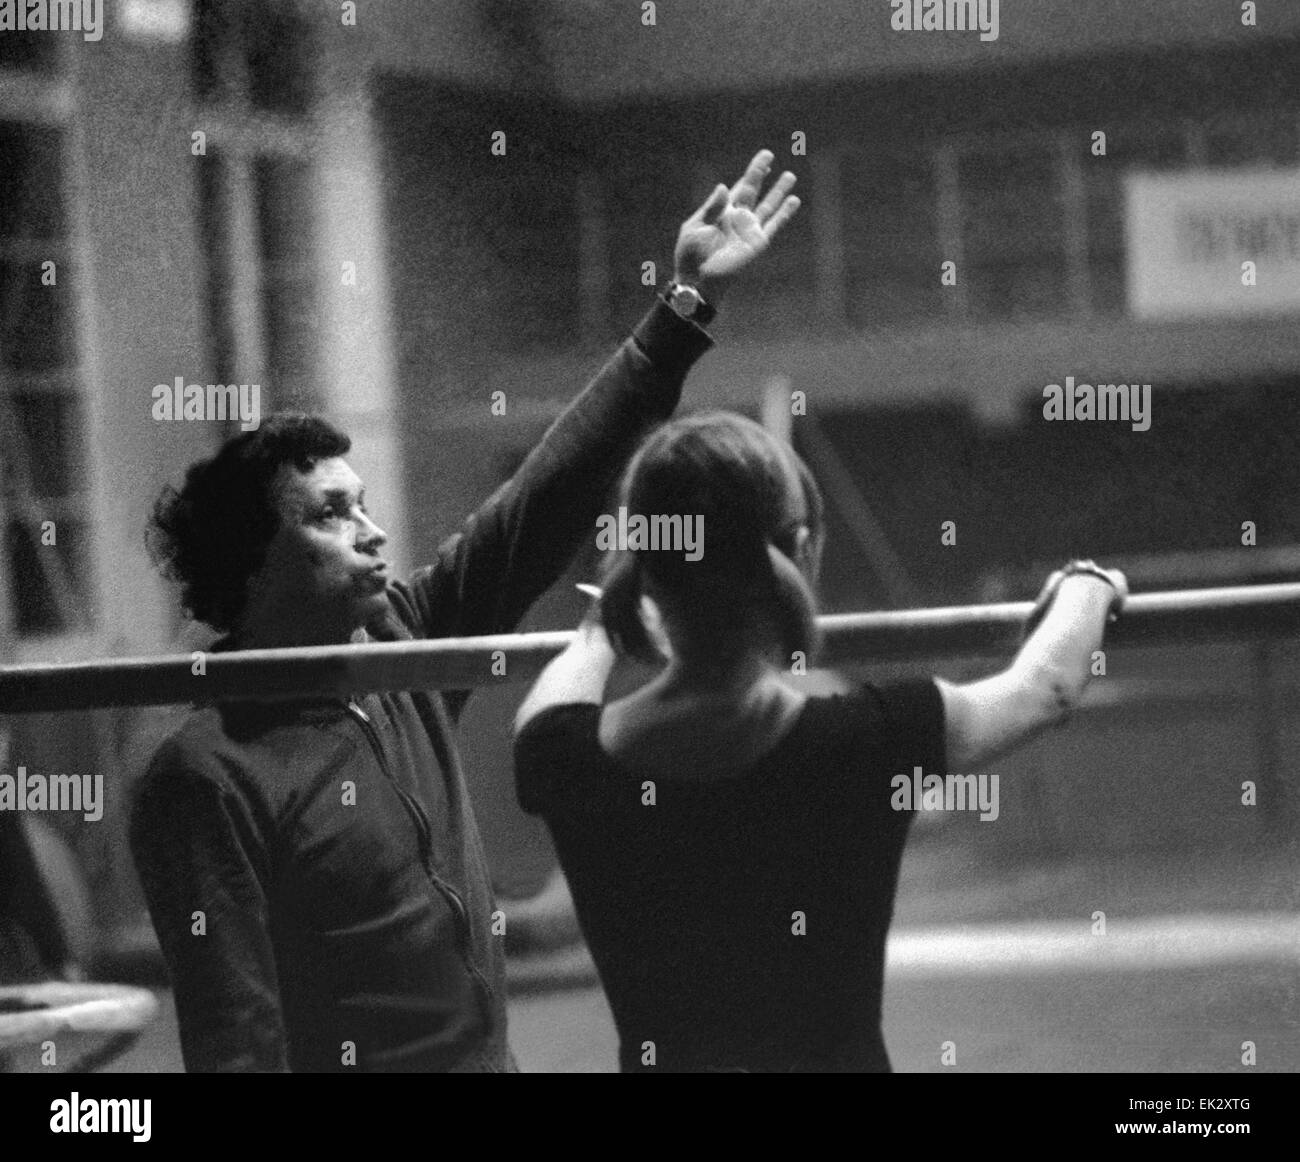 olympic champion soviet gymnast of belorussia olga korbut and her coach